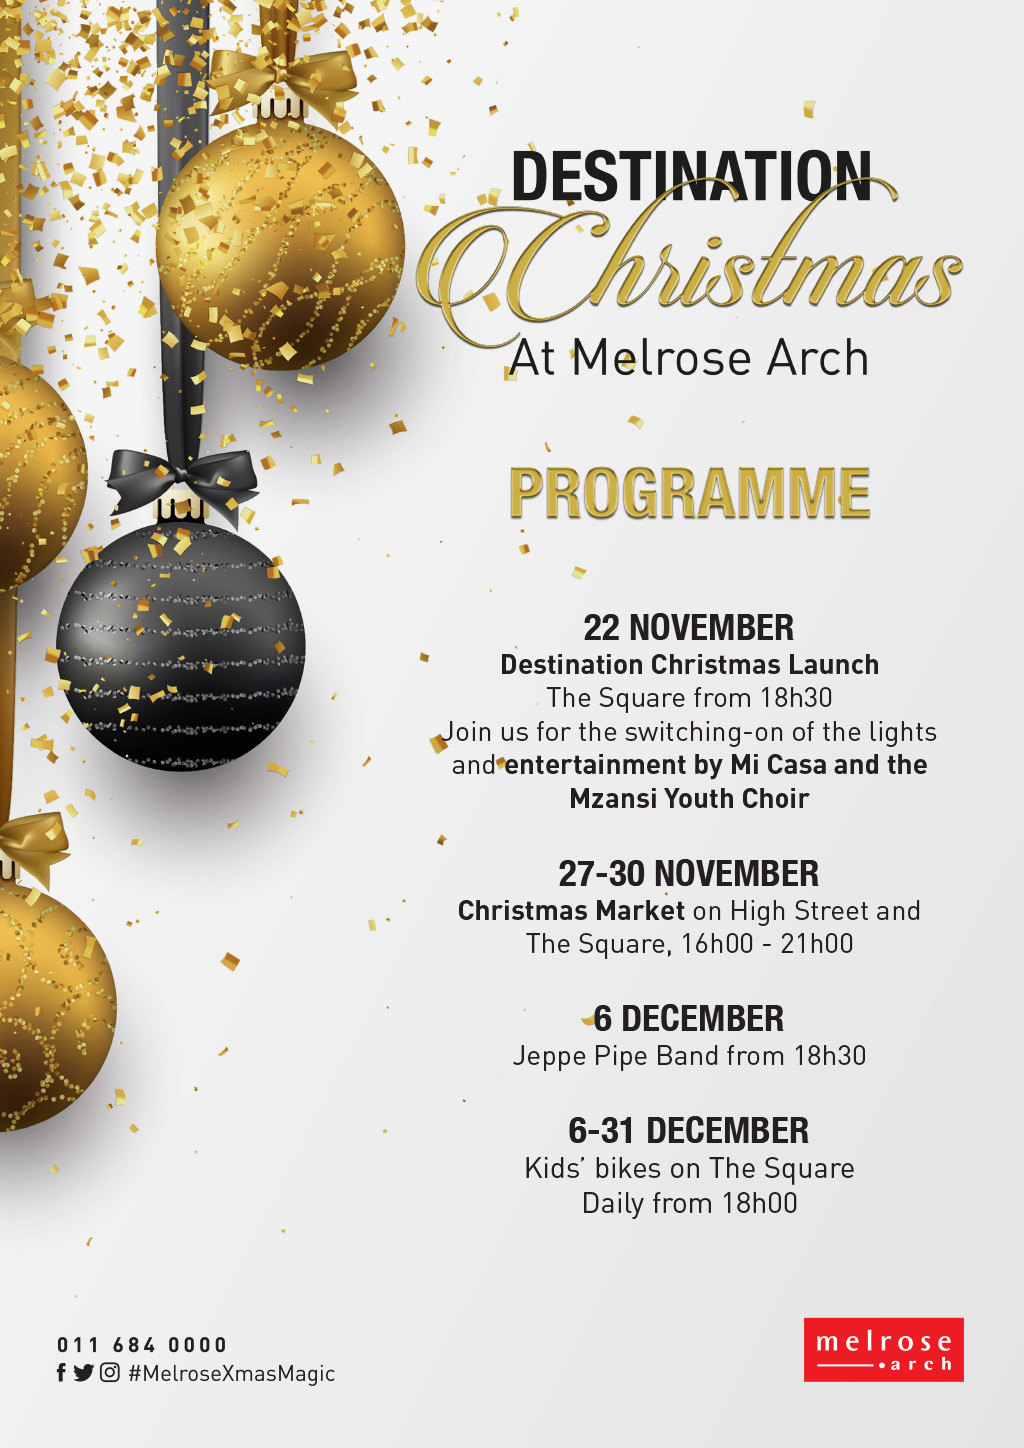 Destination%20Christmas%20programme 20191112160331 large - Its 'Destination Christmas' at Melrose Arch this holiday season